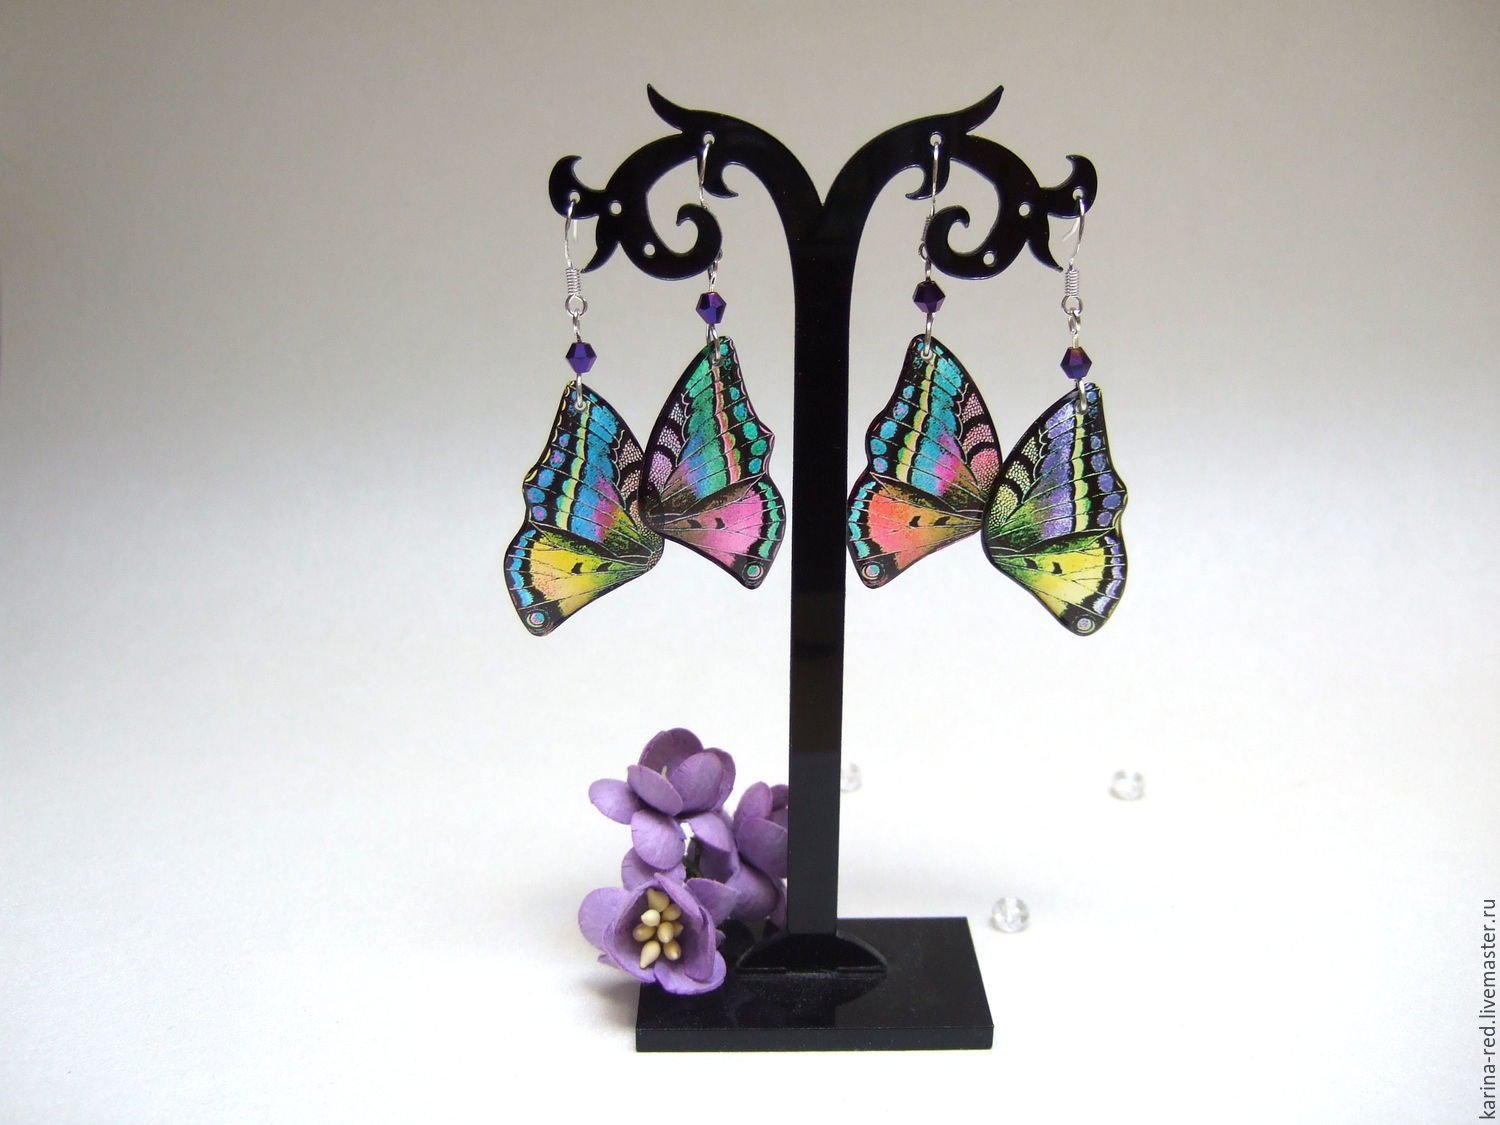 transparent wings earrings butterfly gift shop epoxy resin jewelry shop to buy jewelry gift earrings photo jewelry epoxy earrings butterfly wings insects boho